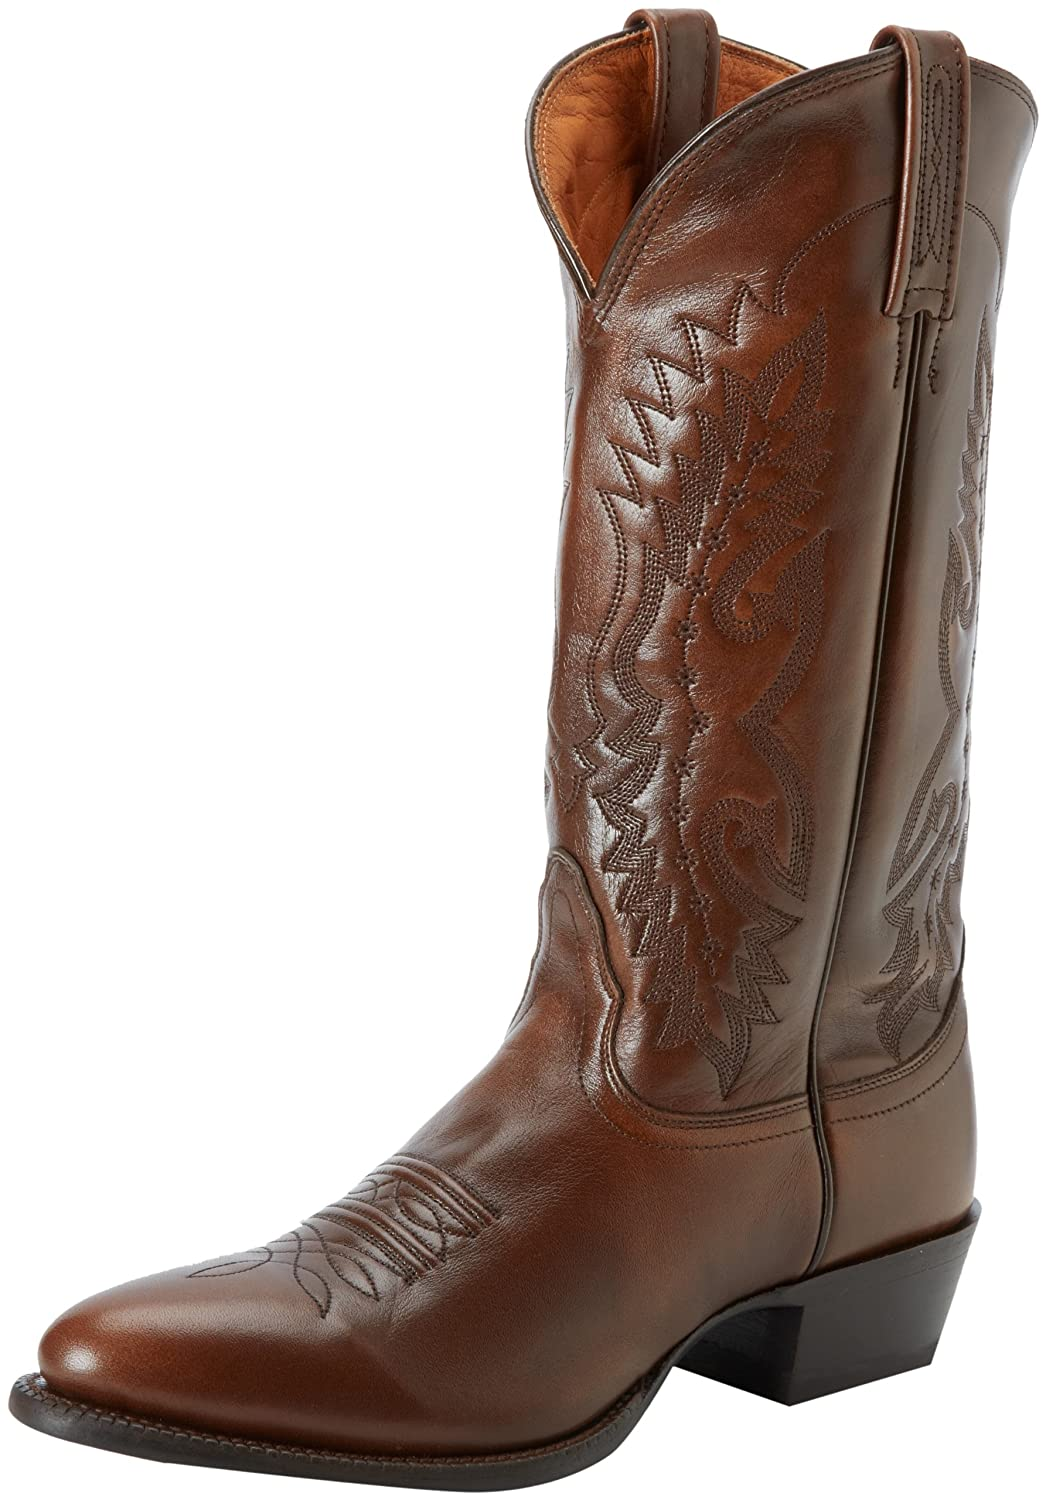 Nocona Boots Men's NB2007 13 Inch Boot